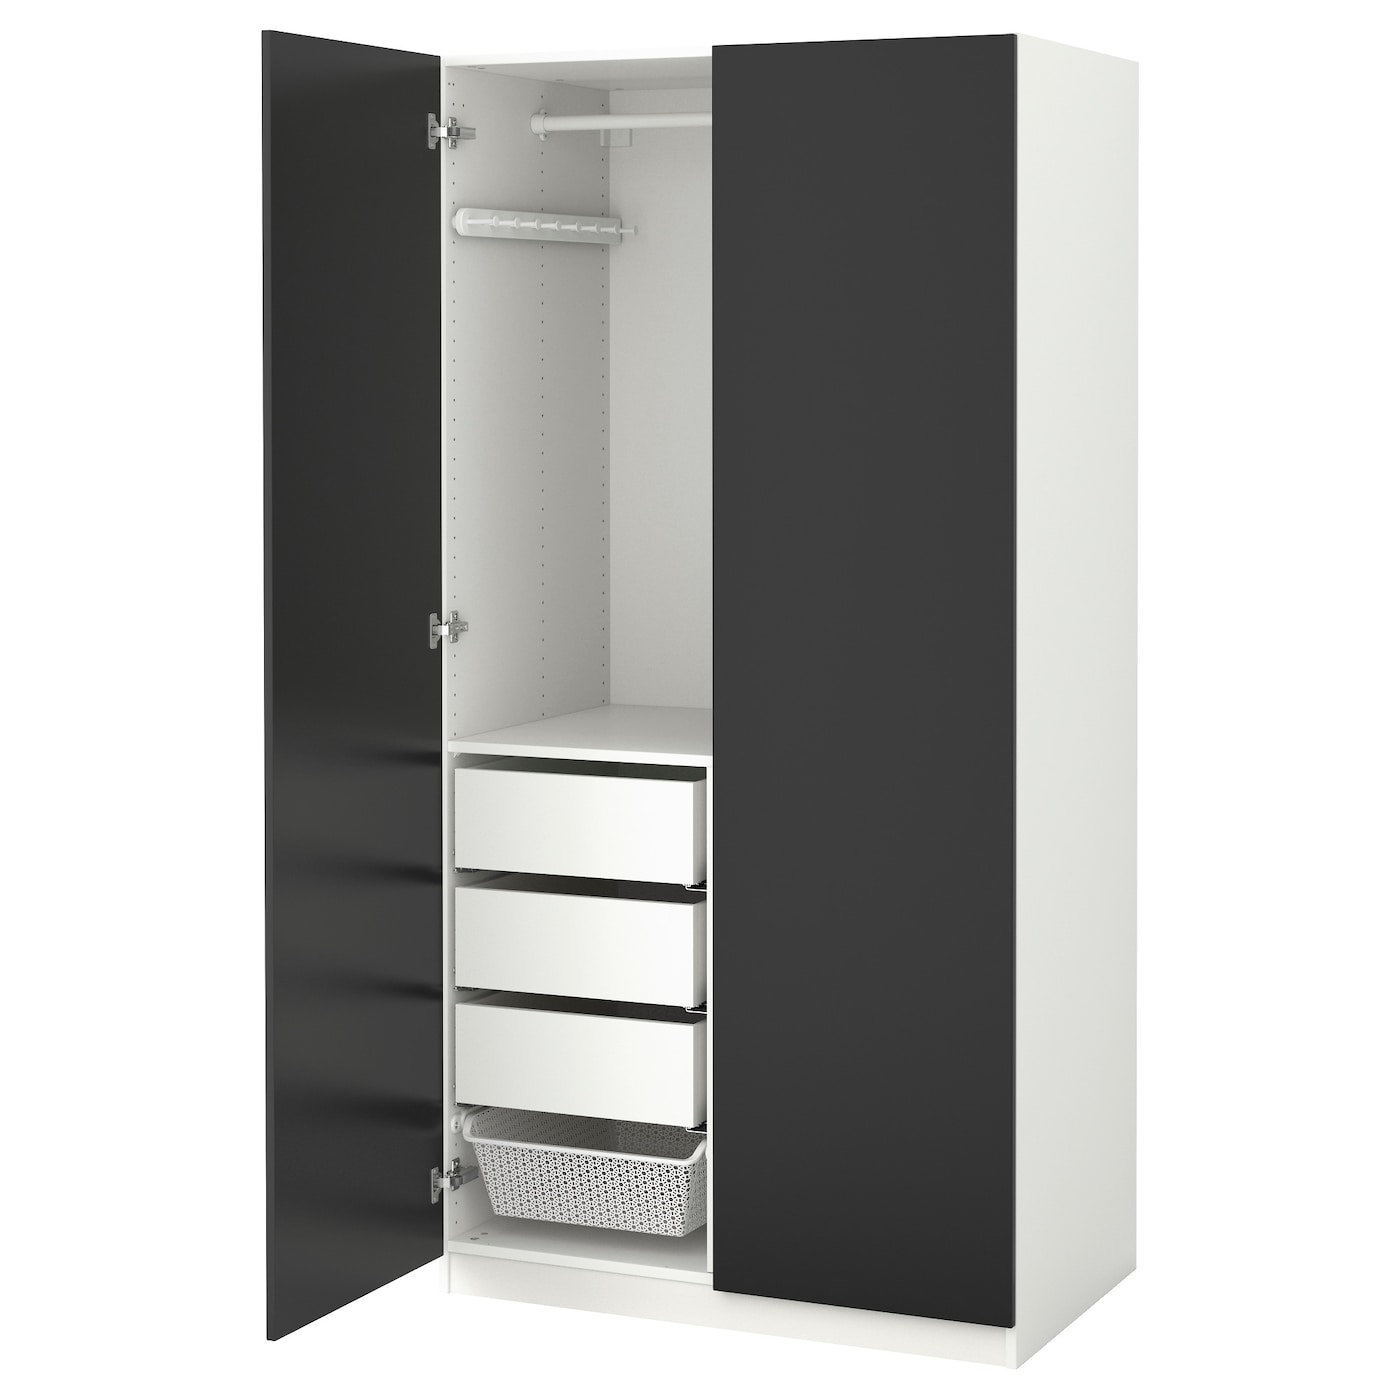 pax wardrobe white tanem black 100x60x201 cm ikea. Black Bedroom Furniture Sets. Home Design Ideas